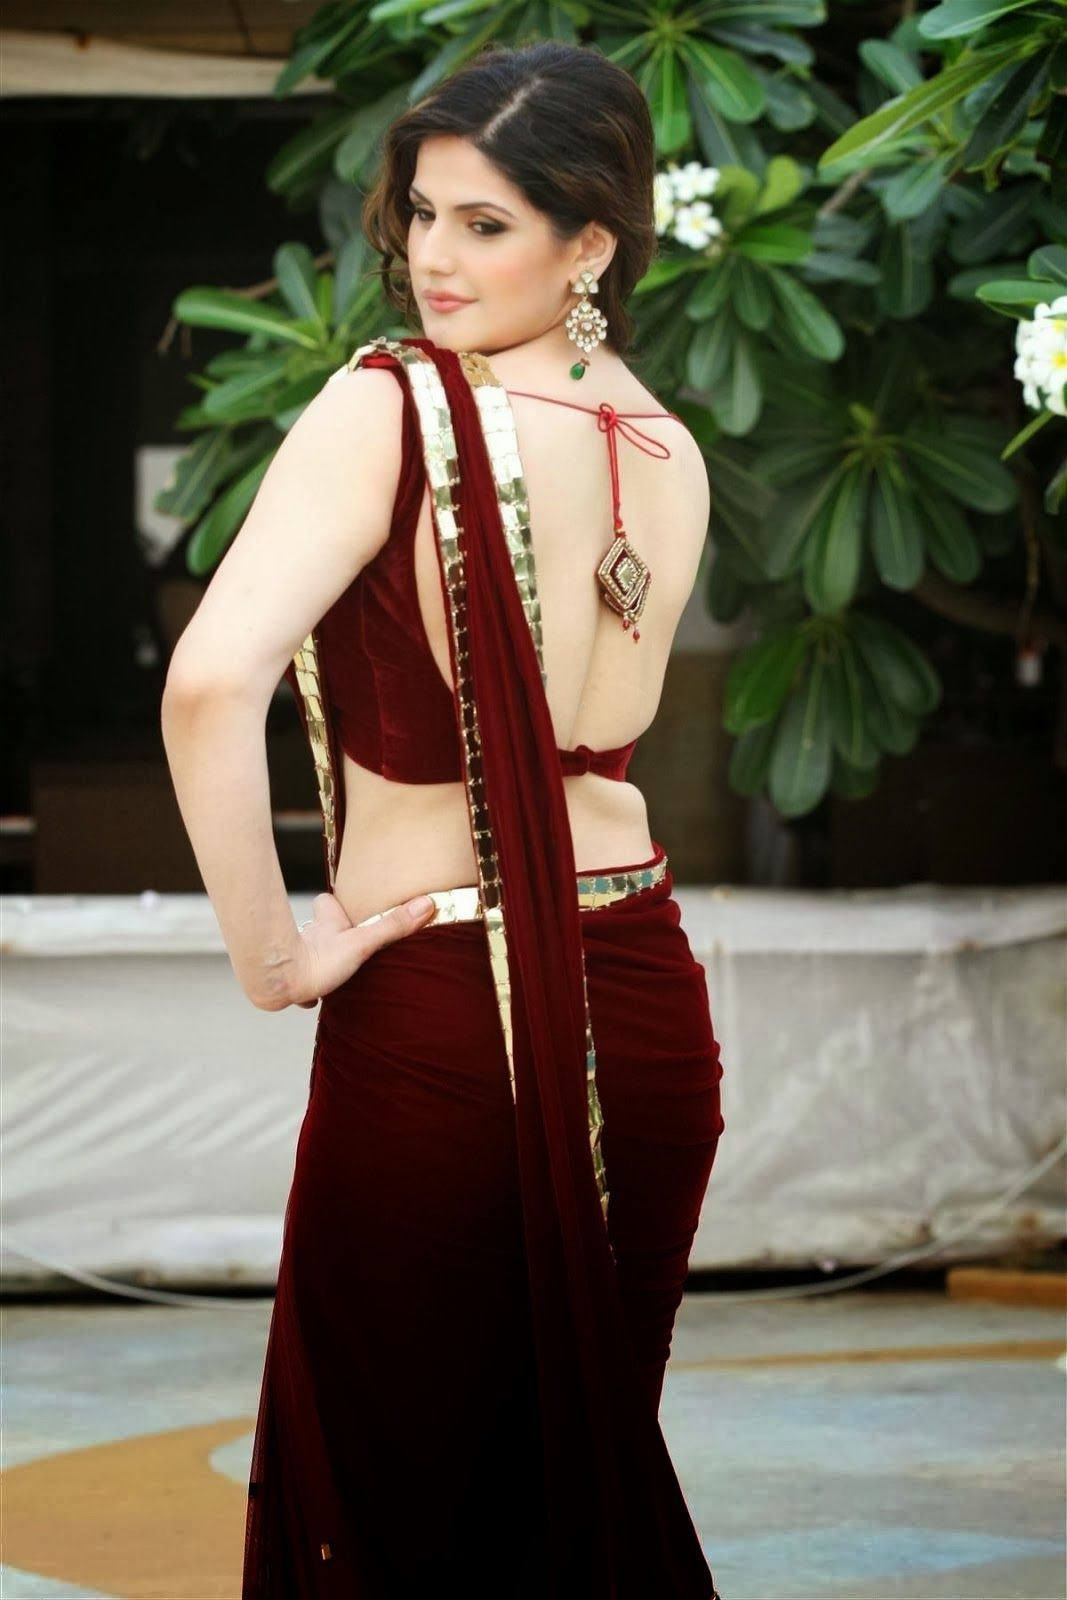 Best Of Pinterest Images Zarine Khan Hot In Saree  Bollywood Celebrities In 2019  Saree -5757